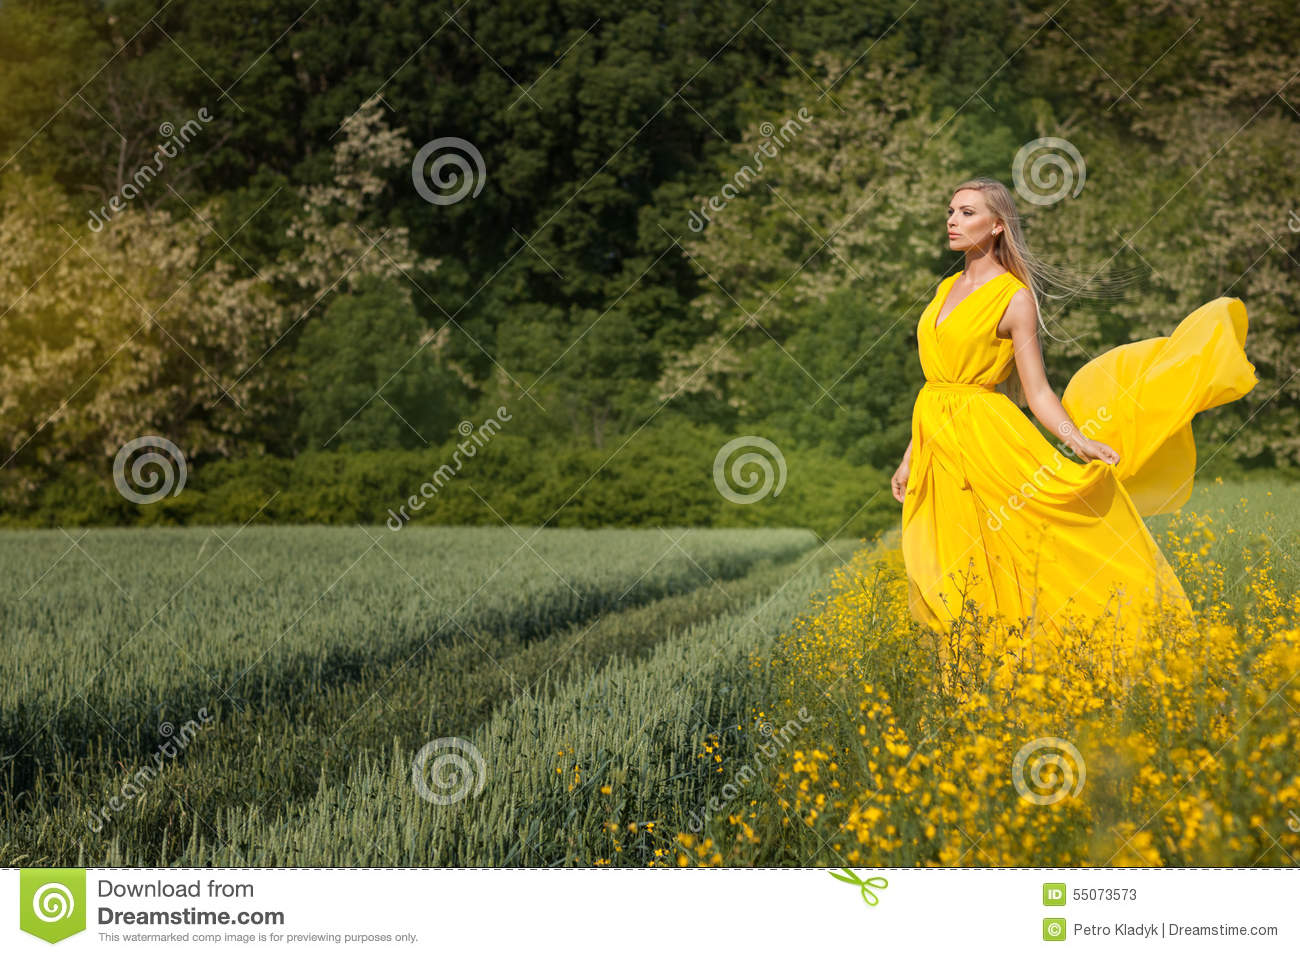 Blonde girl in a yellow dress.